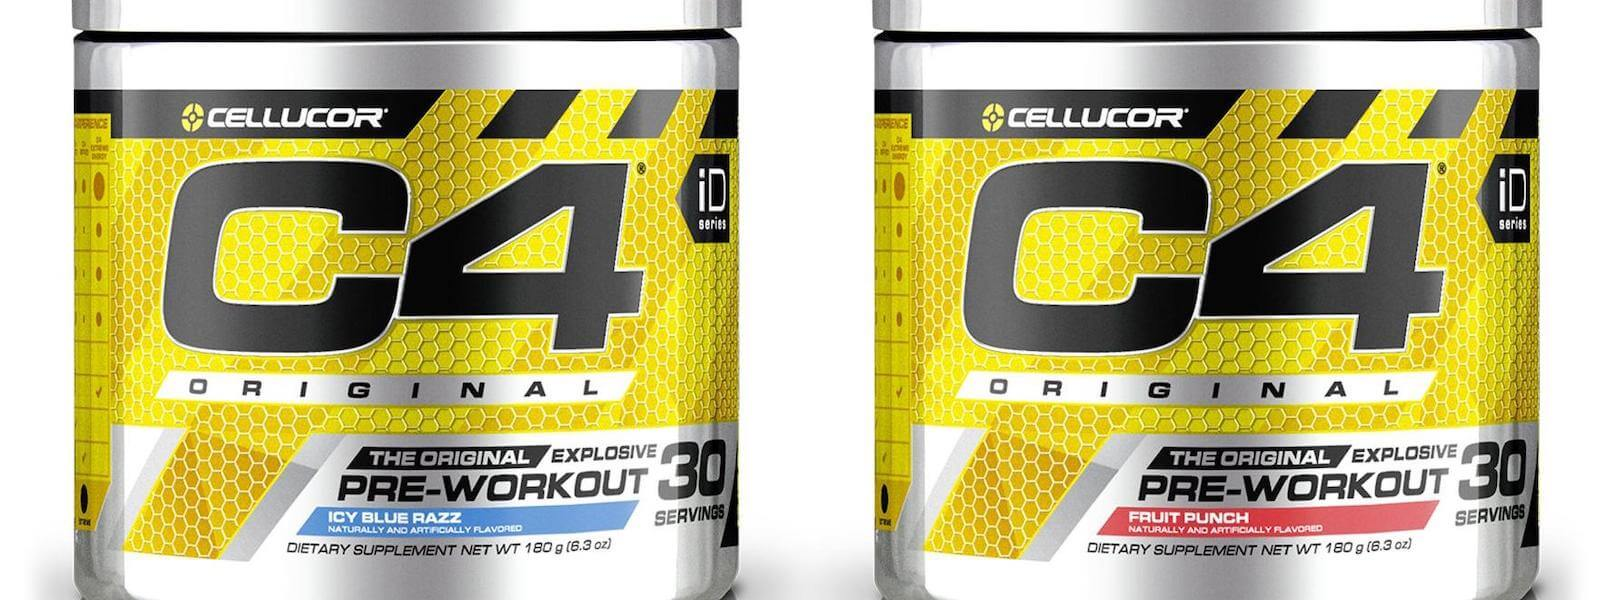 Our Favorite Pre-Workout Supplement Cellucor C4 Supplements Canada